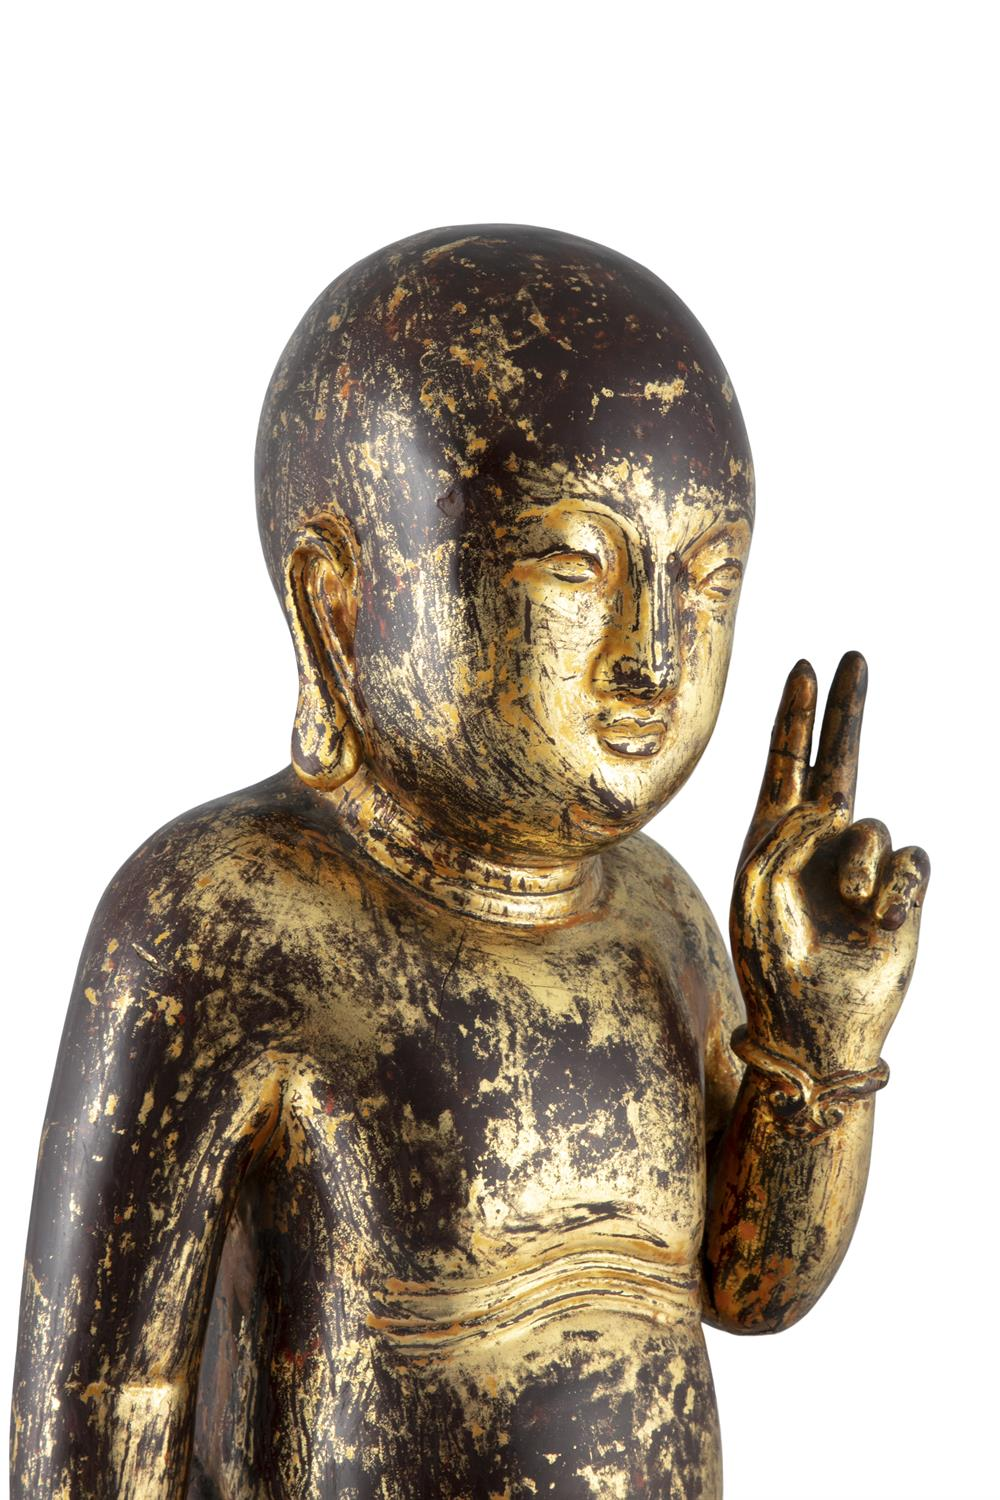 A LARGE GILT-LACQUERED WOODEN SCULPTURE OF THE STANDING INFANT BUDDHA China, Qing Dynasty (or - Image 15 of 20